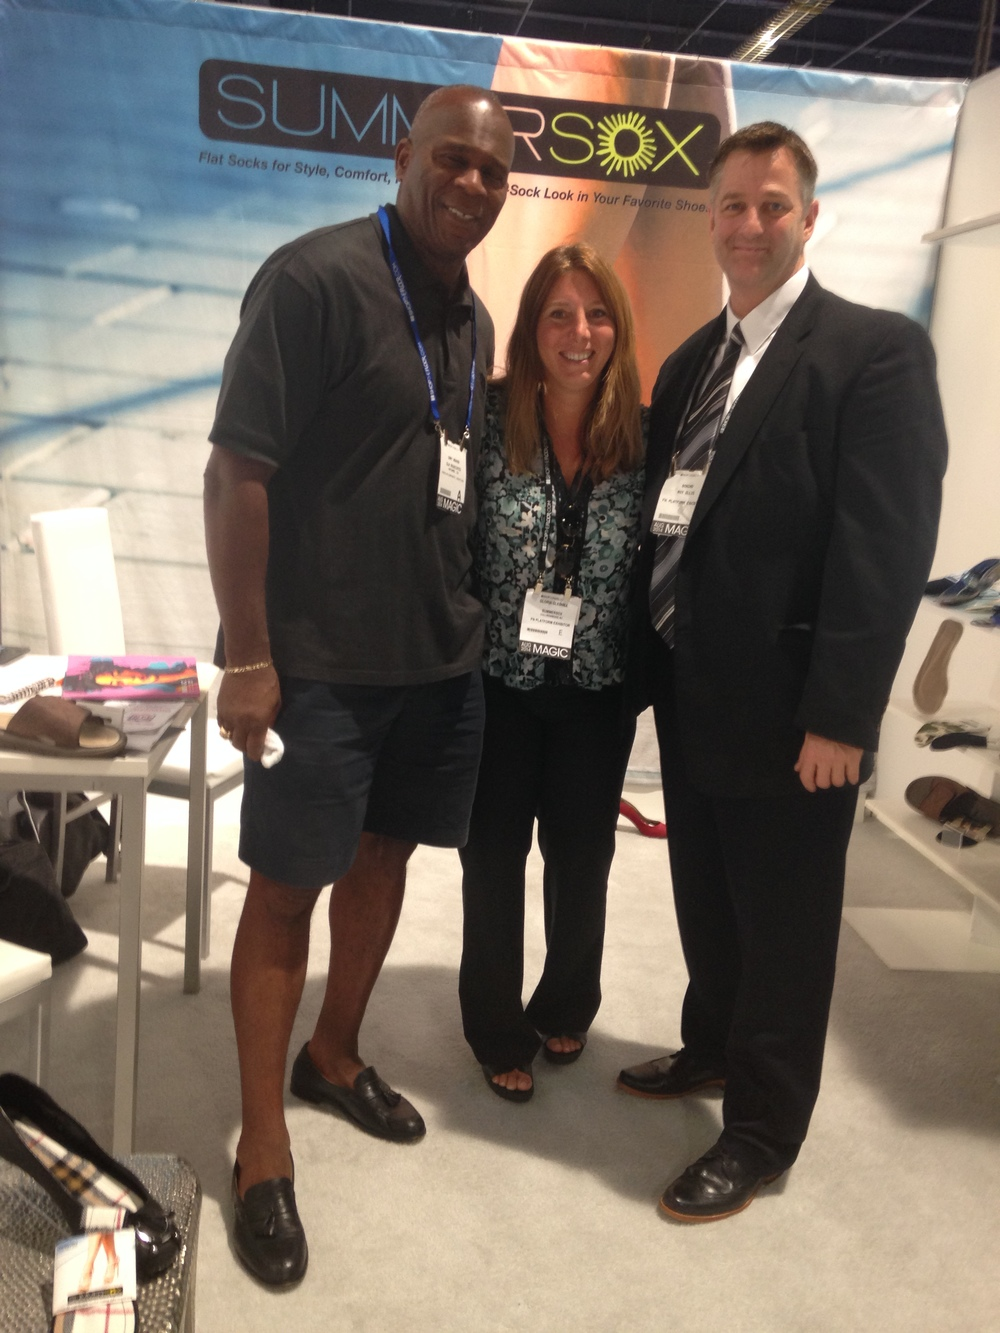 The best times... at FN Platform show in Las Vegas with form NFL linebacker Gary Weaver and former Minor League Baseball Pitcher Roy Ellis.  It was such a pleasure meeting and spending time with them. And most importantly - they got their SummerSox!